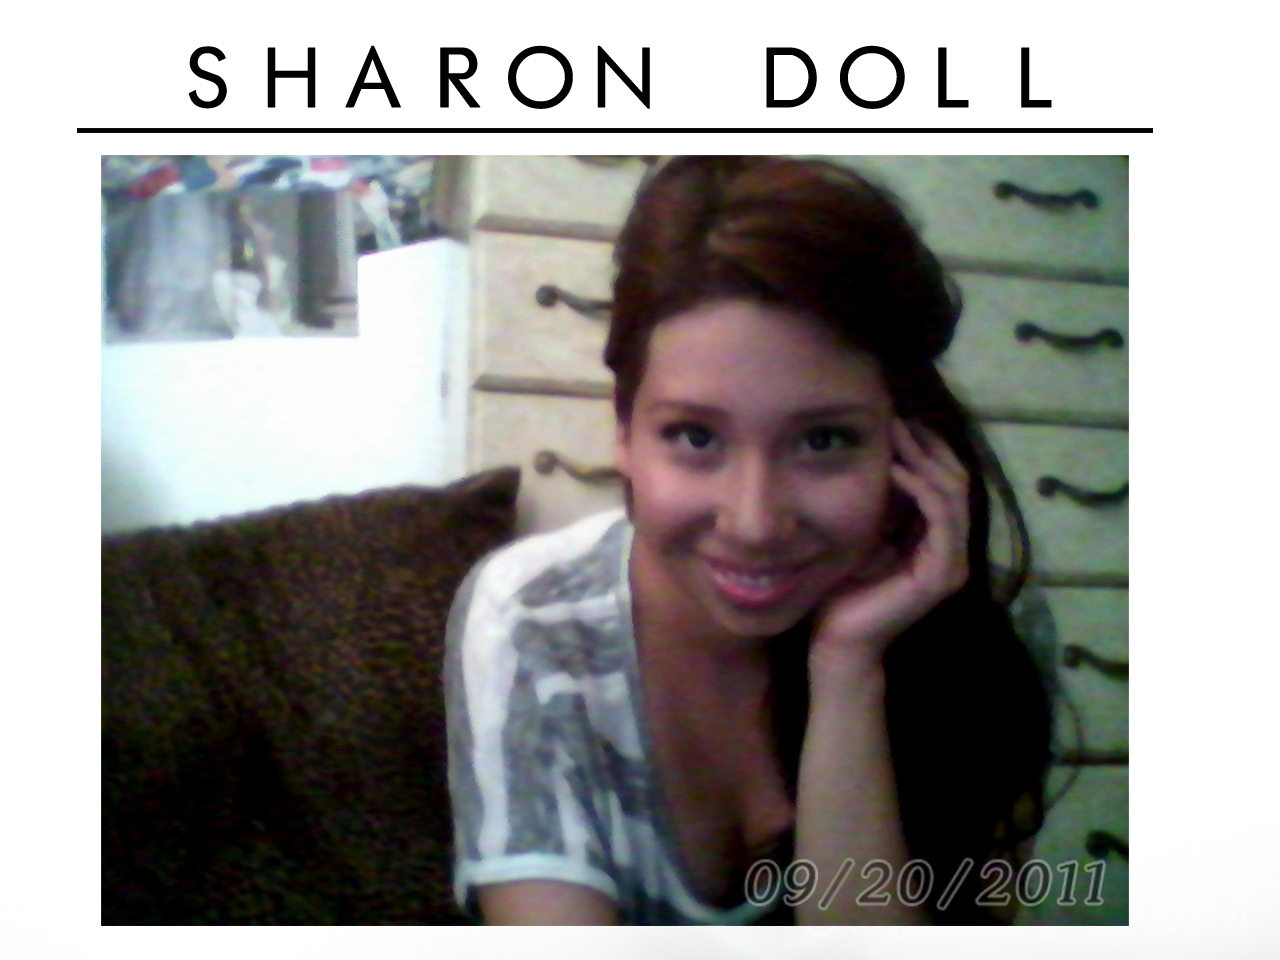 Sharon Doll